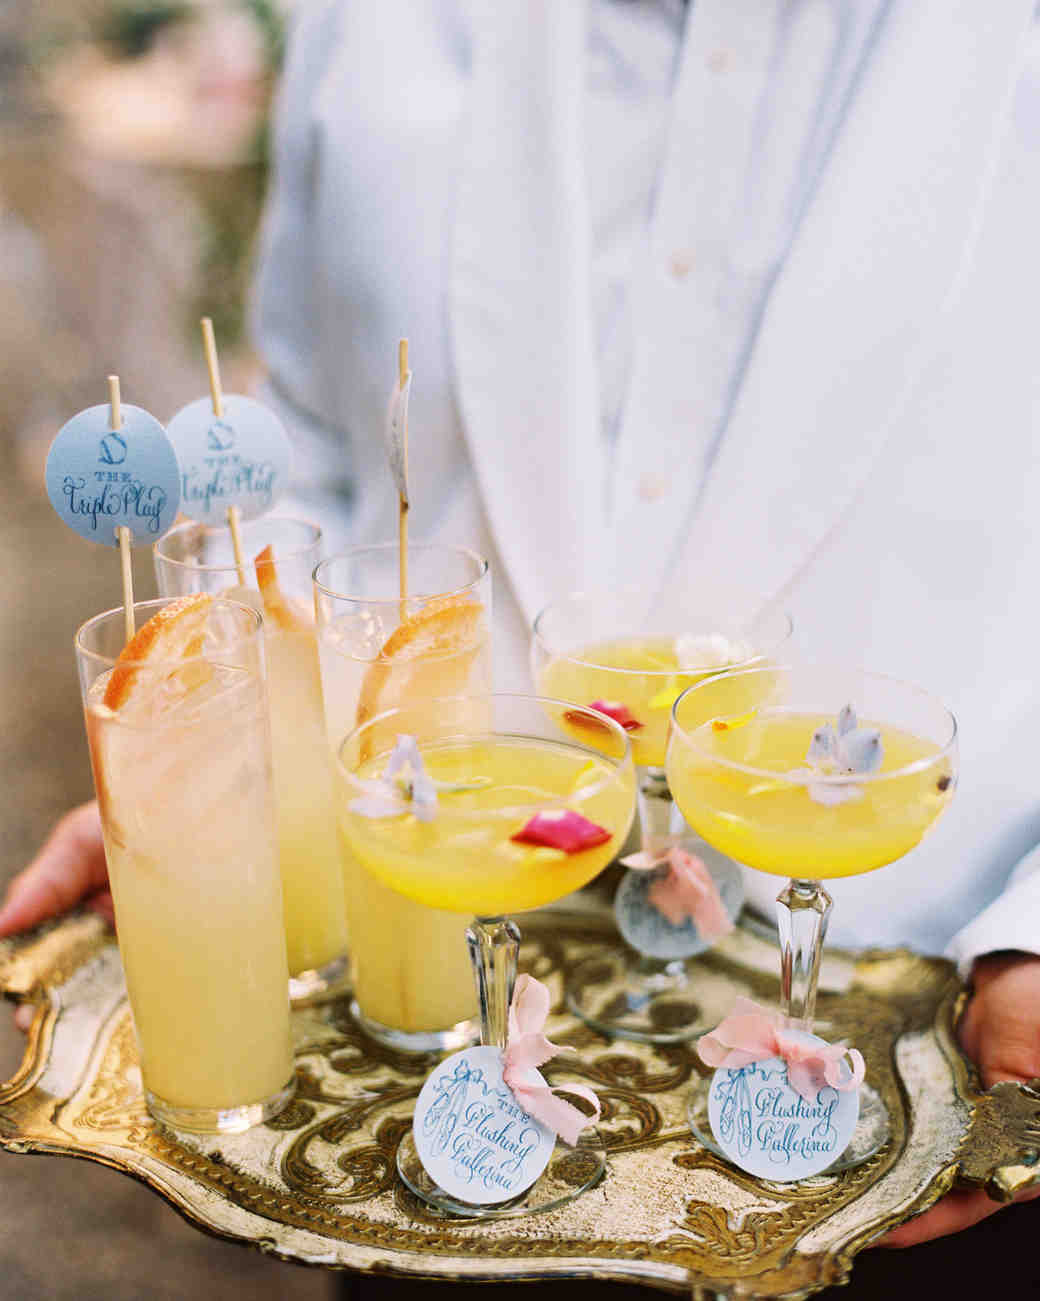 server holding cocktail hour tray with drinks